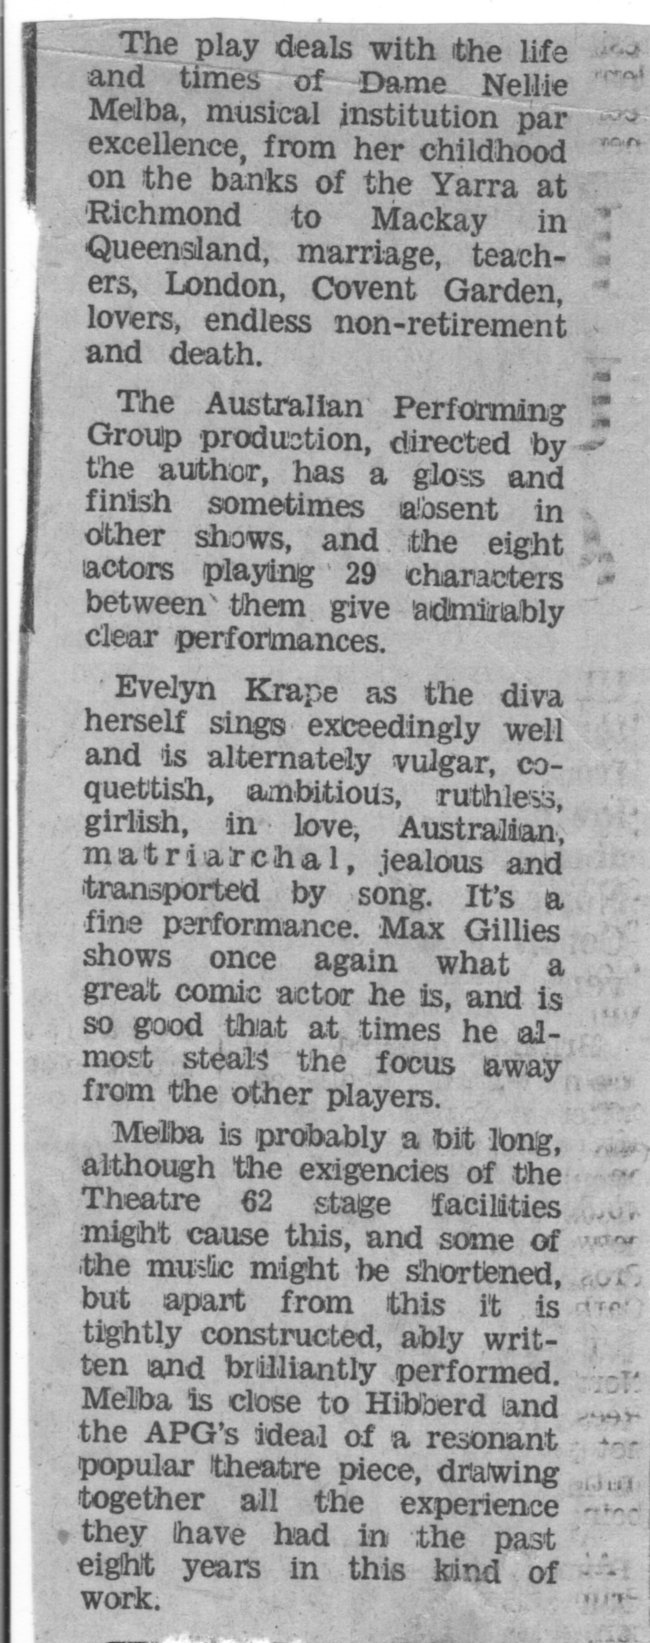 Toast-To-Melba-Adelaide-Review-Hutchinson-8March1976_p2